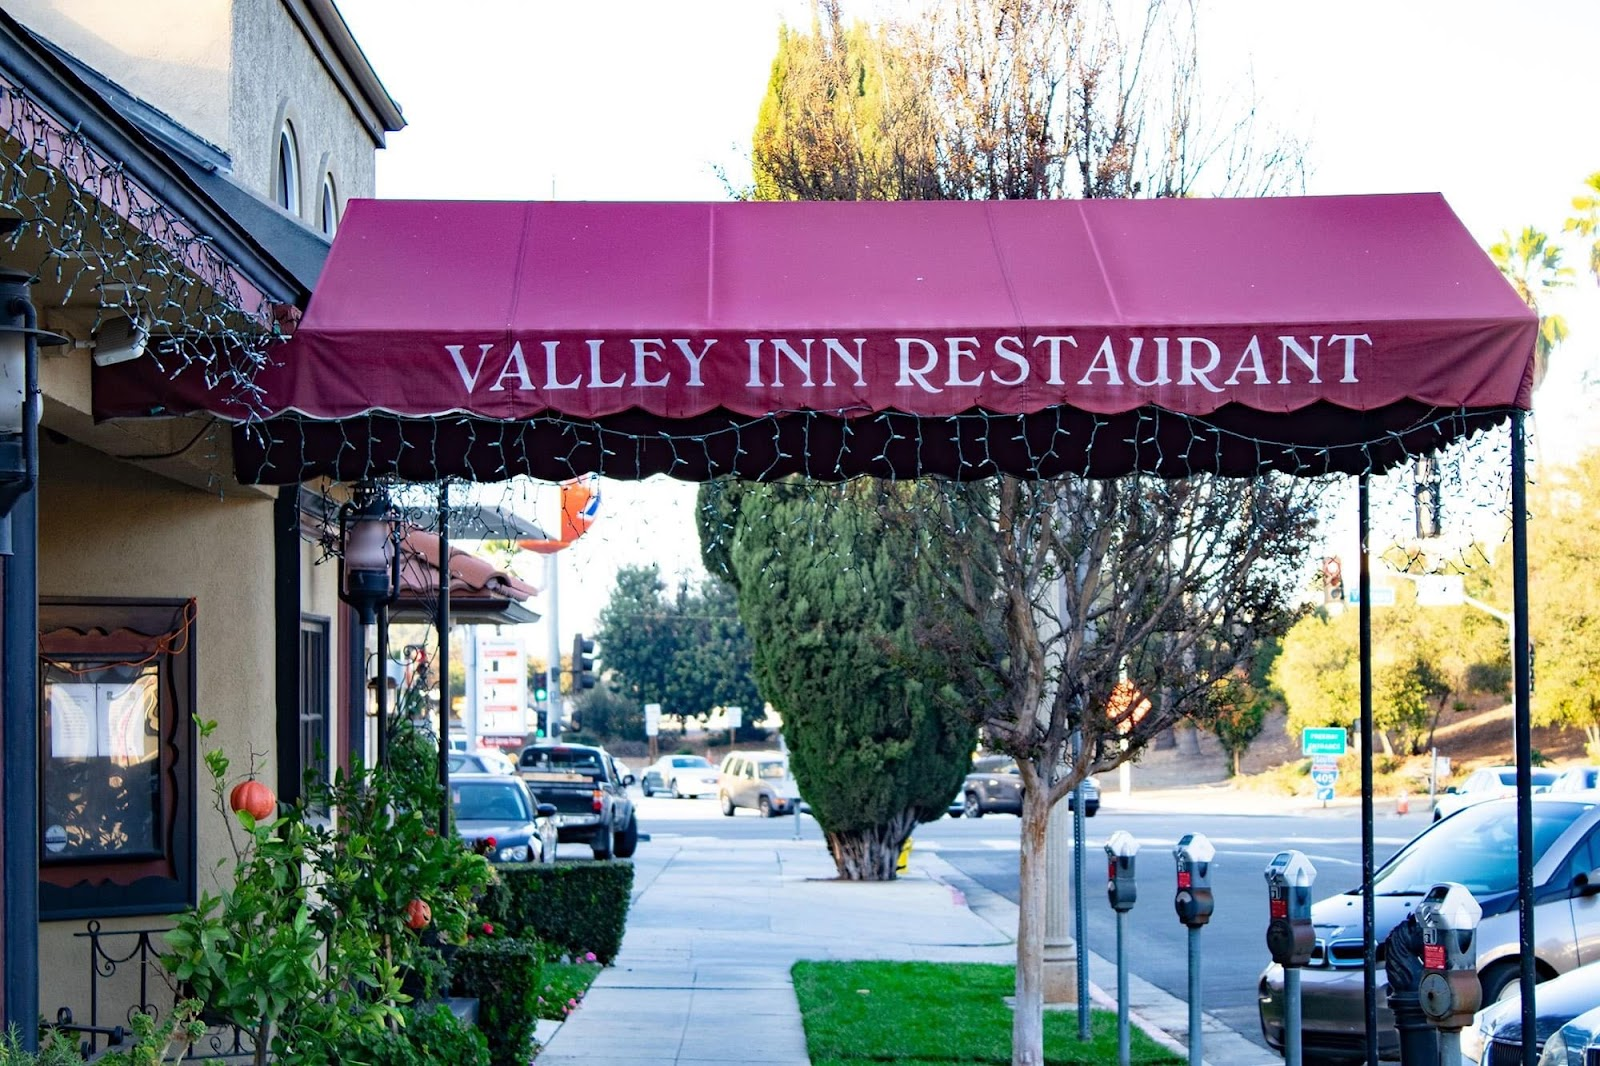 Valley Inn Restaurant Exterior